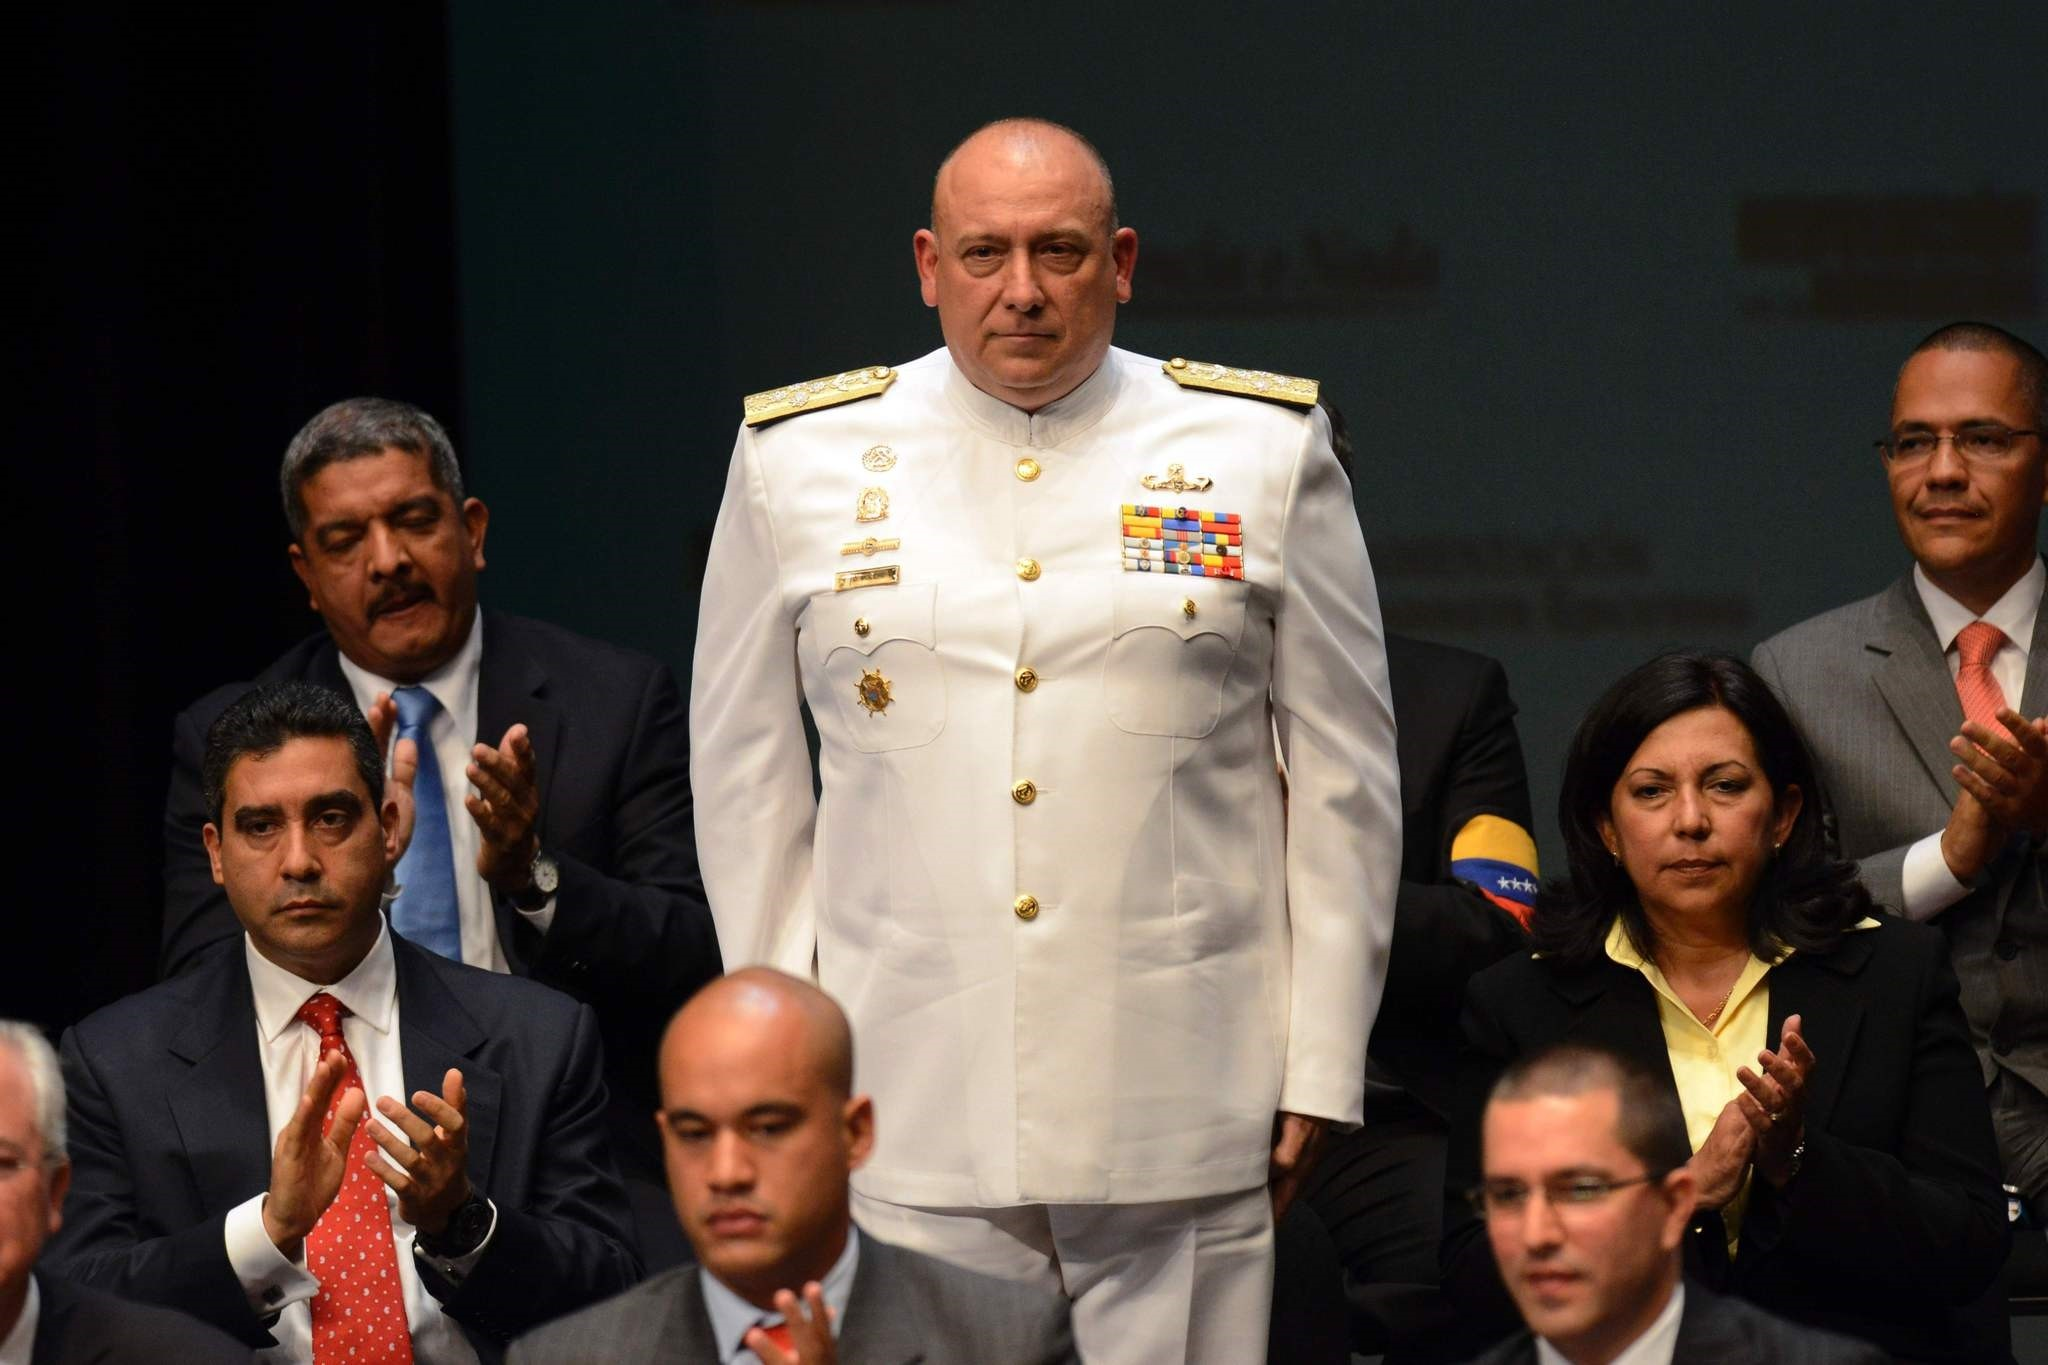 This file photo taken on April 22, 2013 shows current Venezuelan ambassador to Peru, Diego Molero Bellavia (C), during the ministers swearing-in ceremony in Caracas. (AFP Photo)